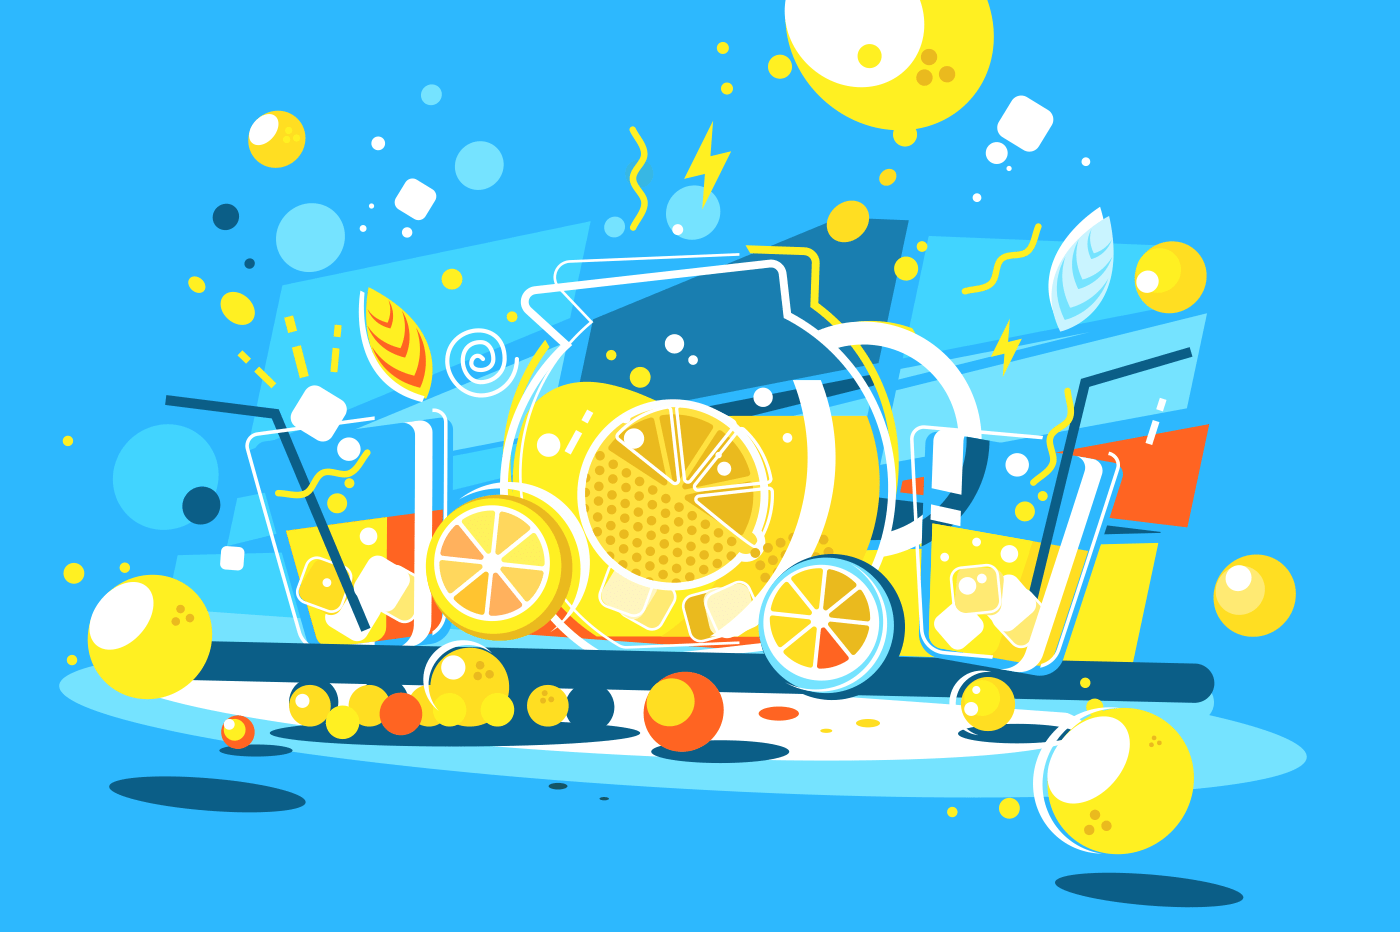 Cool lemonade in glass jug. Delicious soft drink of lemons. Vector illustration